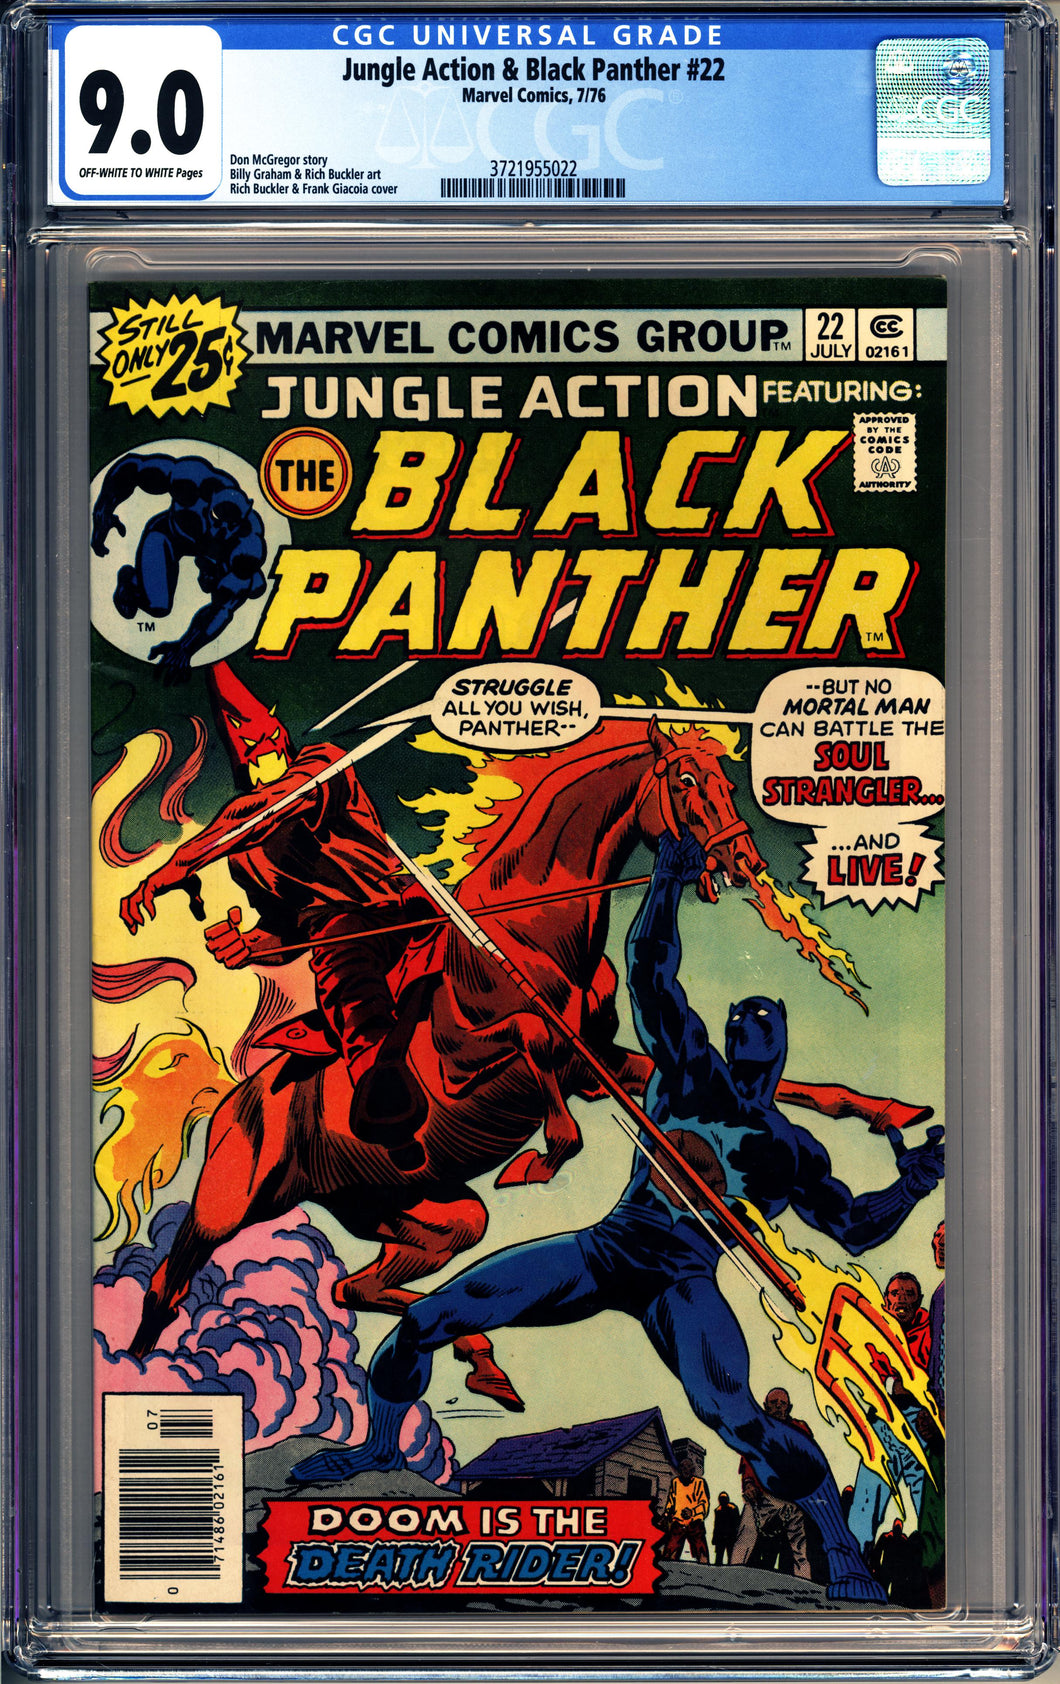 JUNGLE ACTION & BLACK PANTHER #22 (1976 Marvel) CGC GRADED 9.0 VF/NM